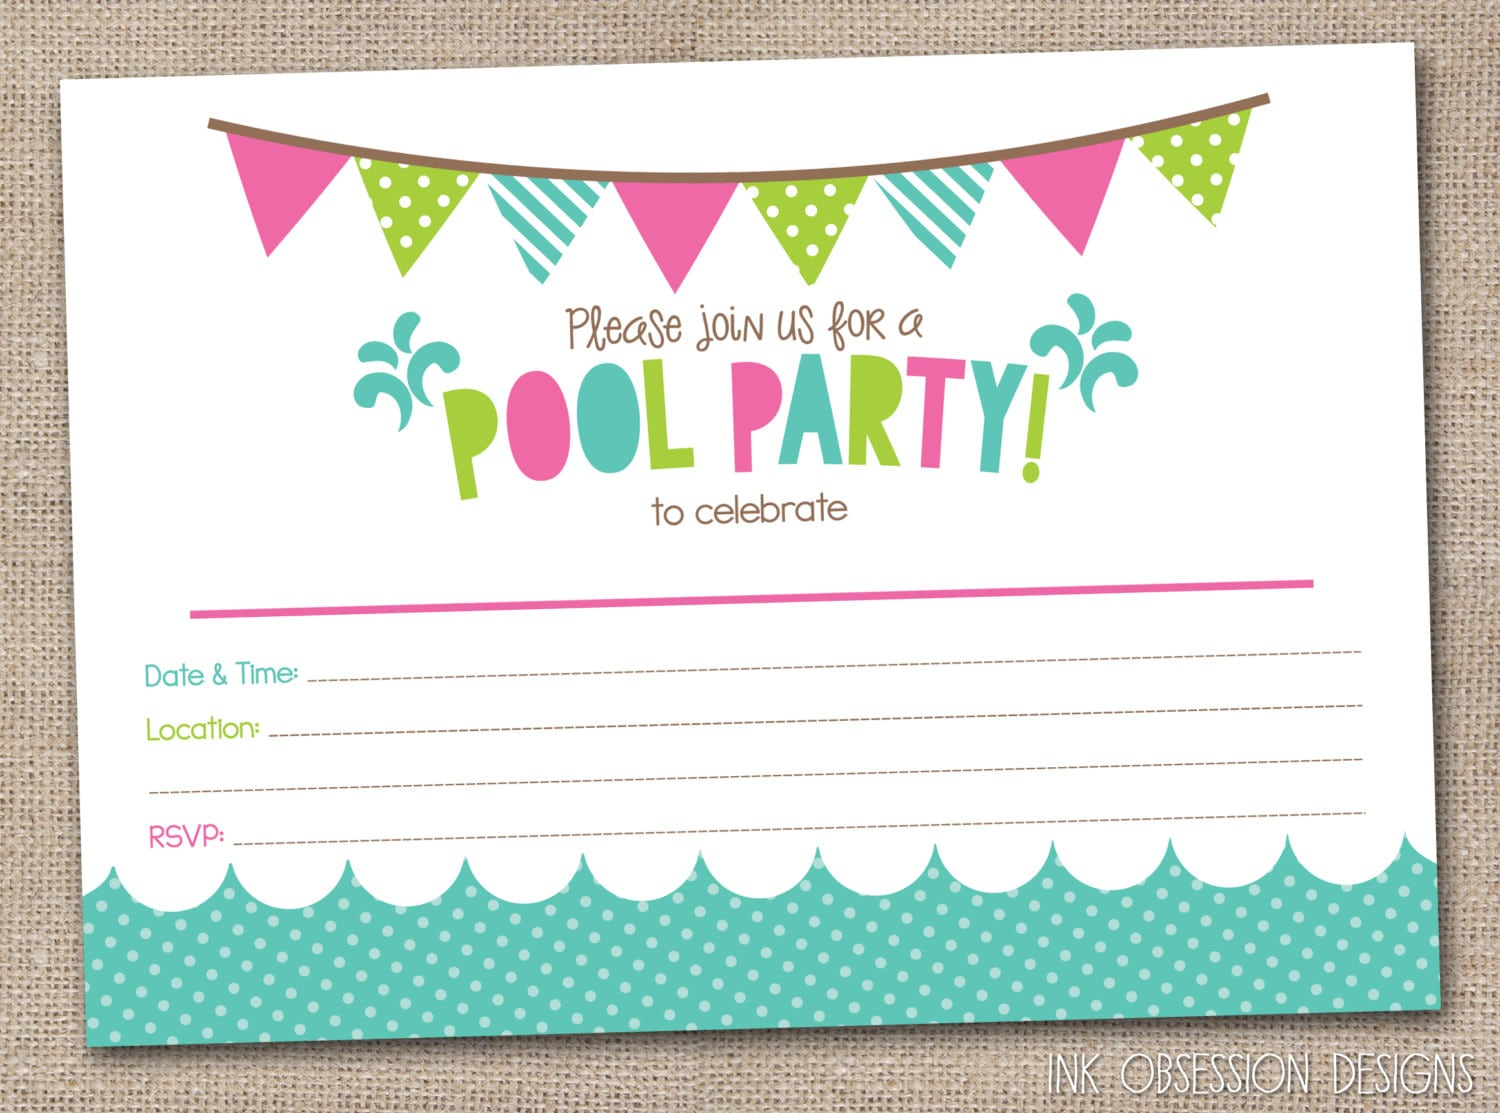 Blank Party Invitations